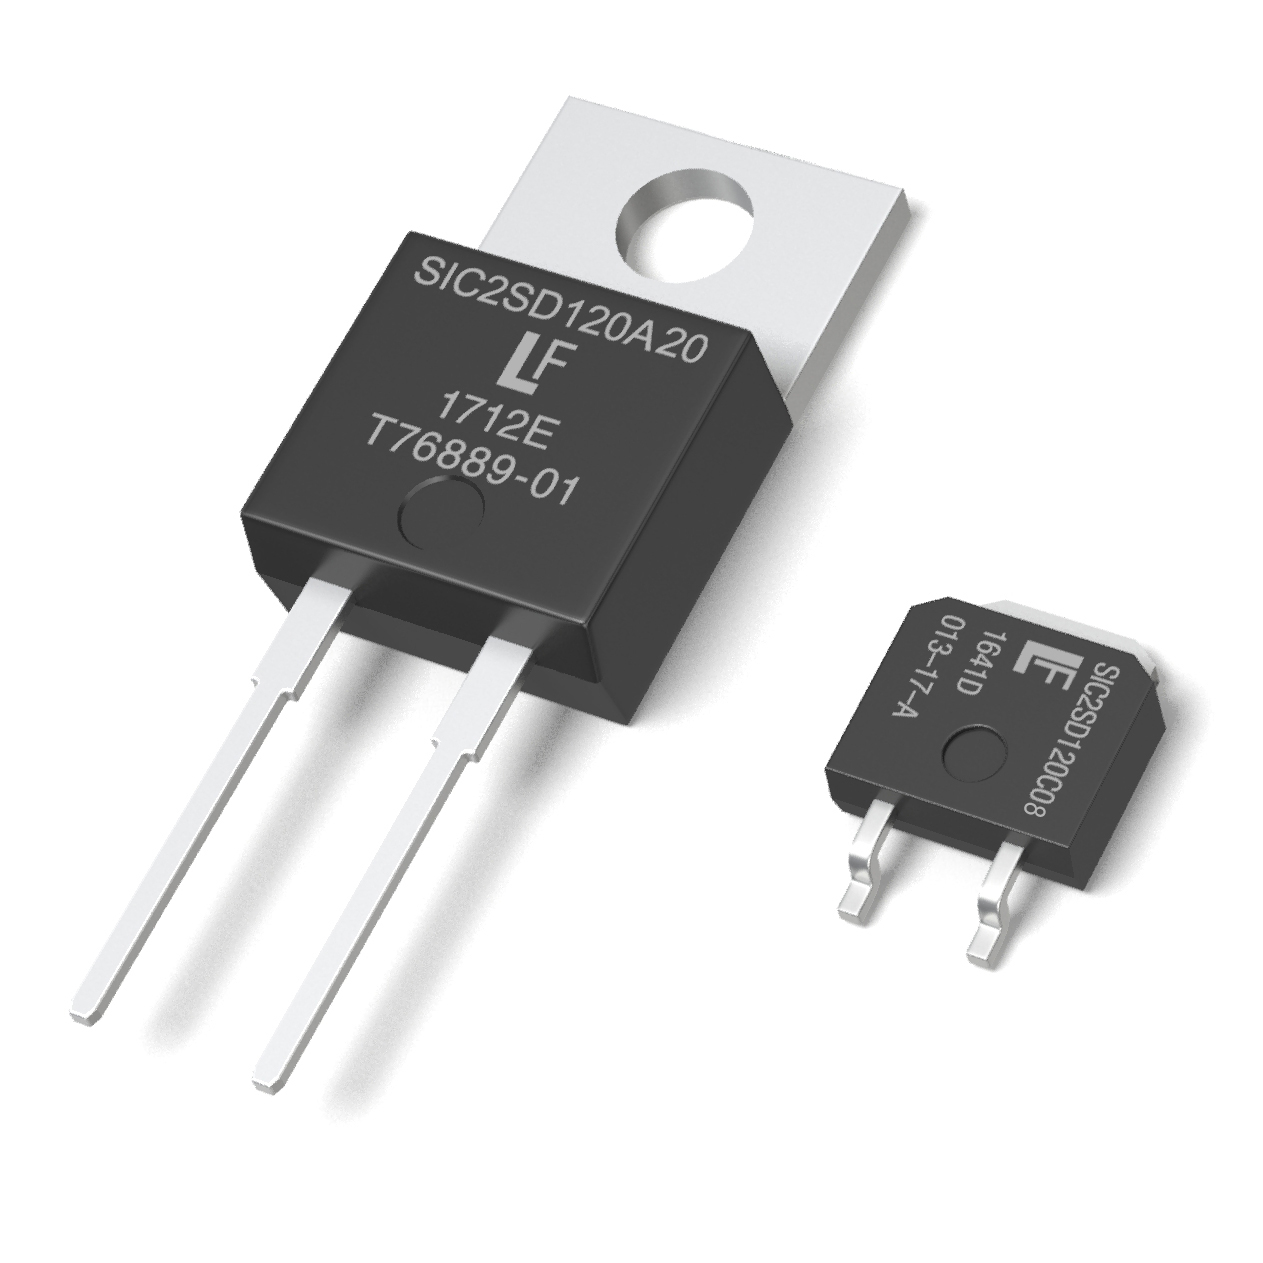 SiC Schottky Diode Line Reduces Switching Losses, Increases Efficiency and Robustness